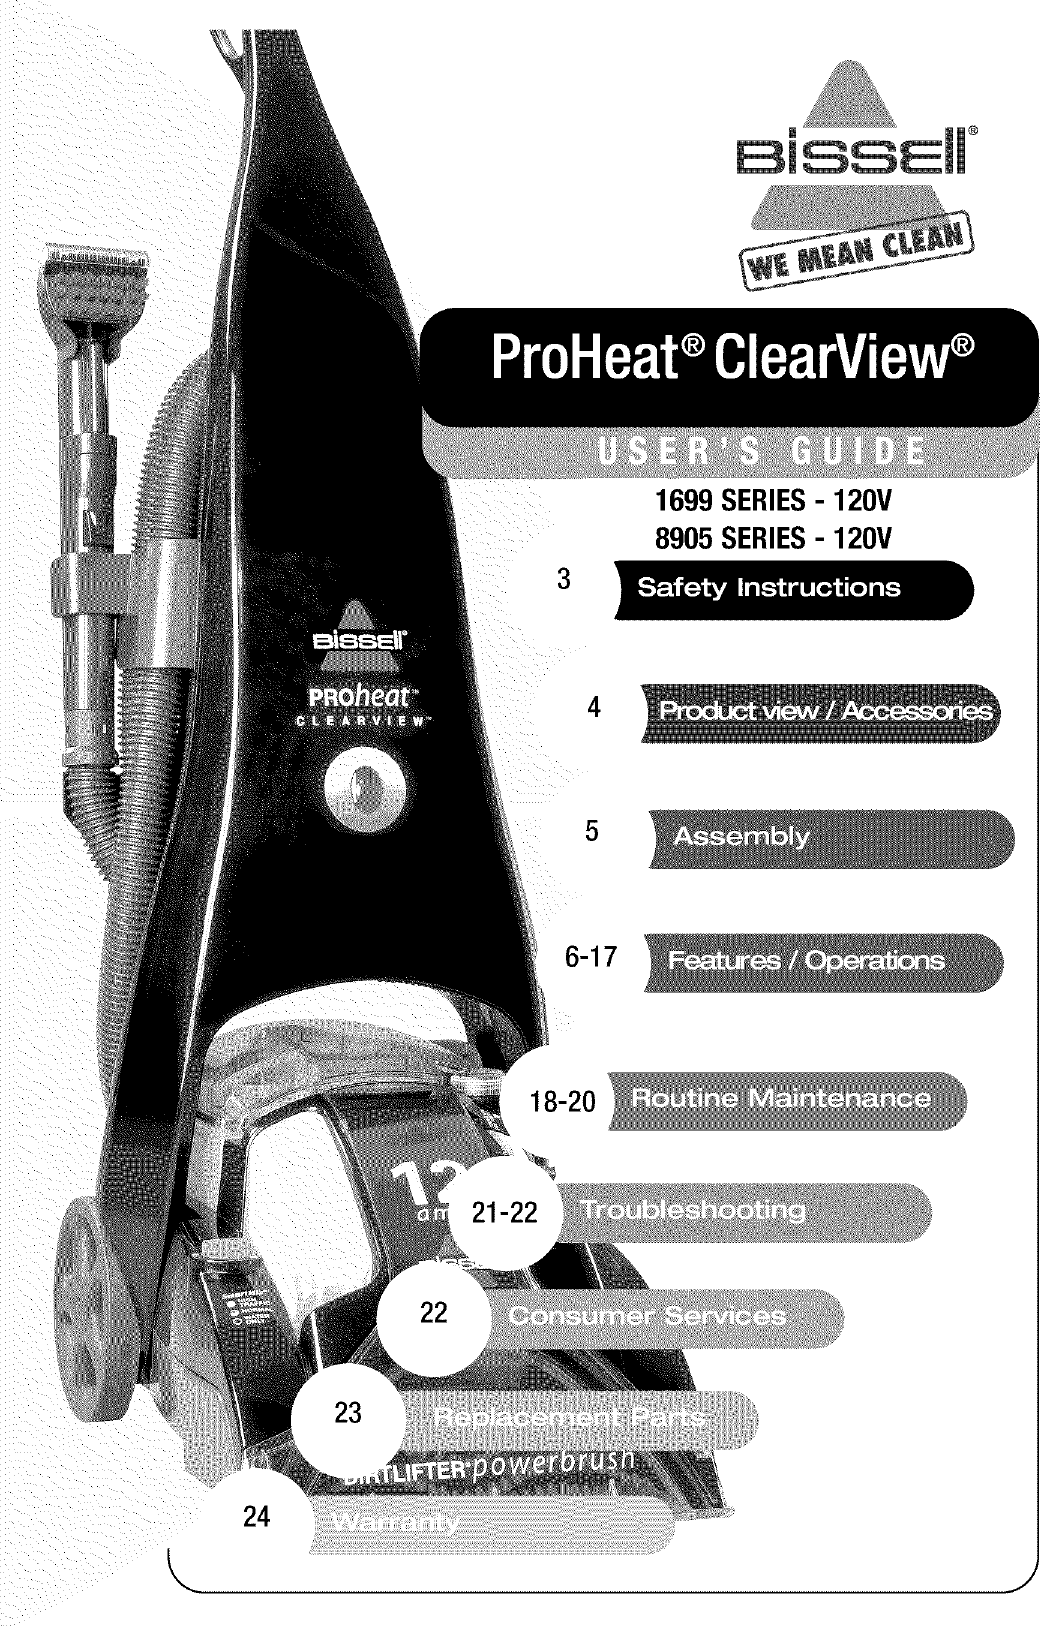 Bissell Proheat Clearview Manual Manual Guide